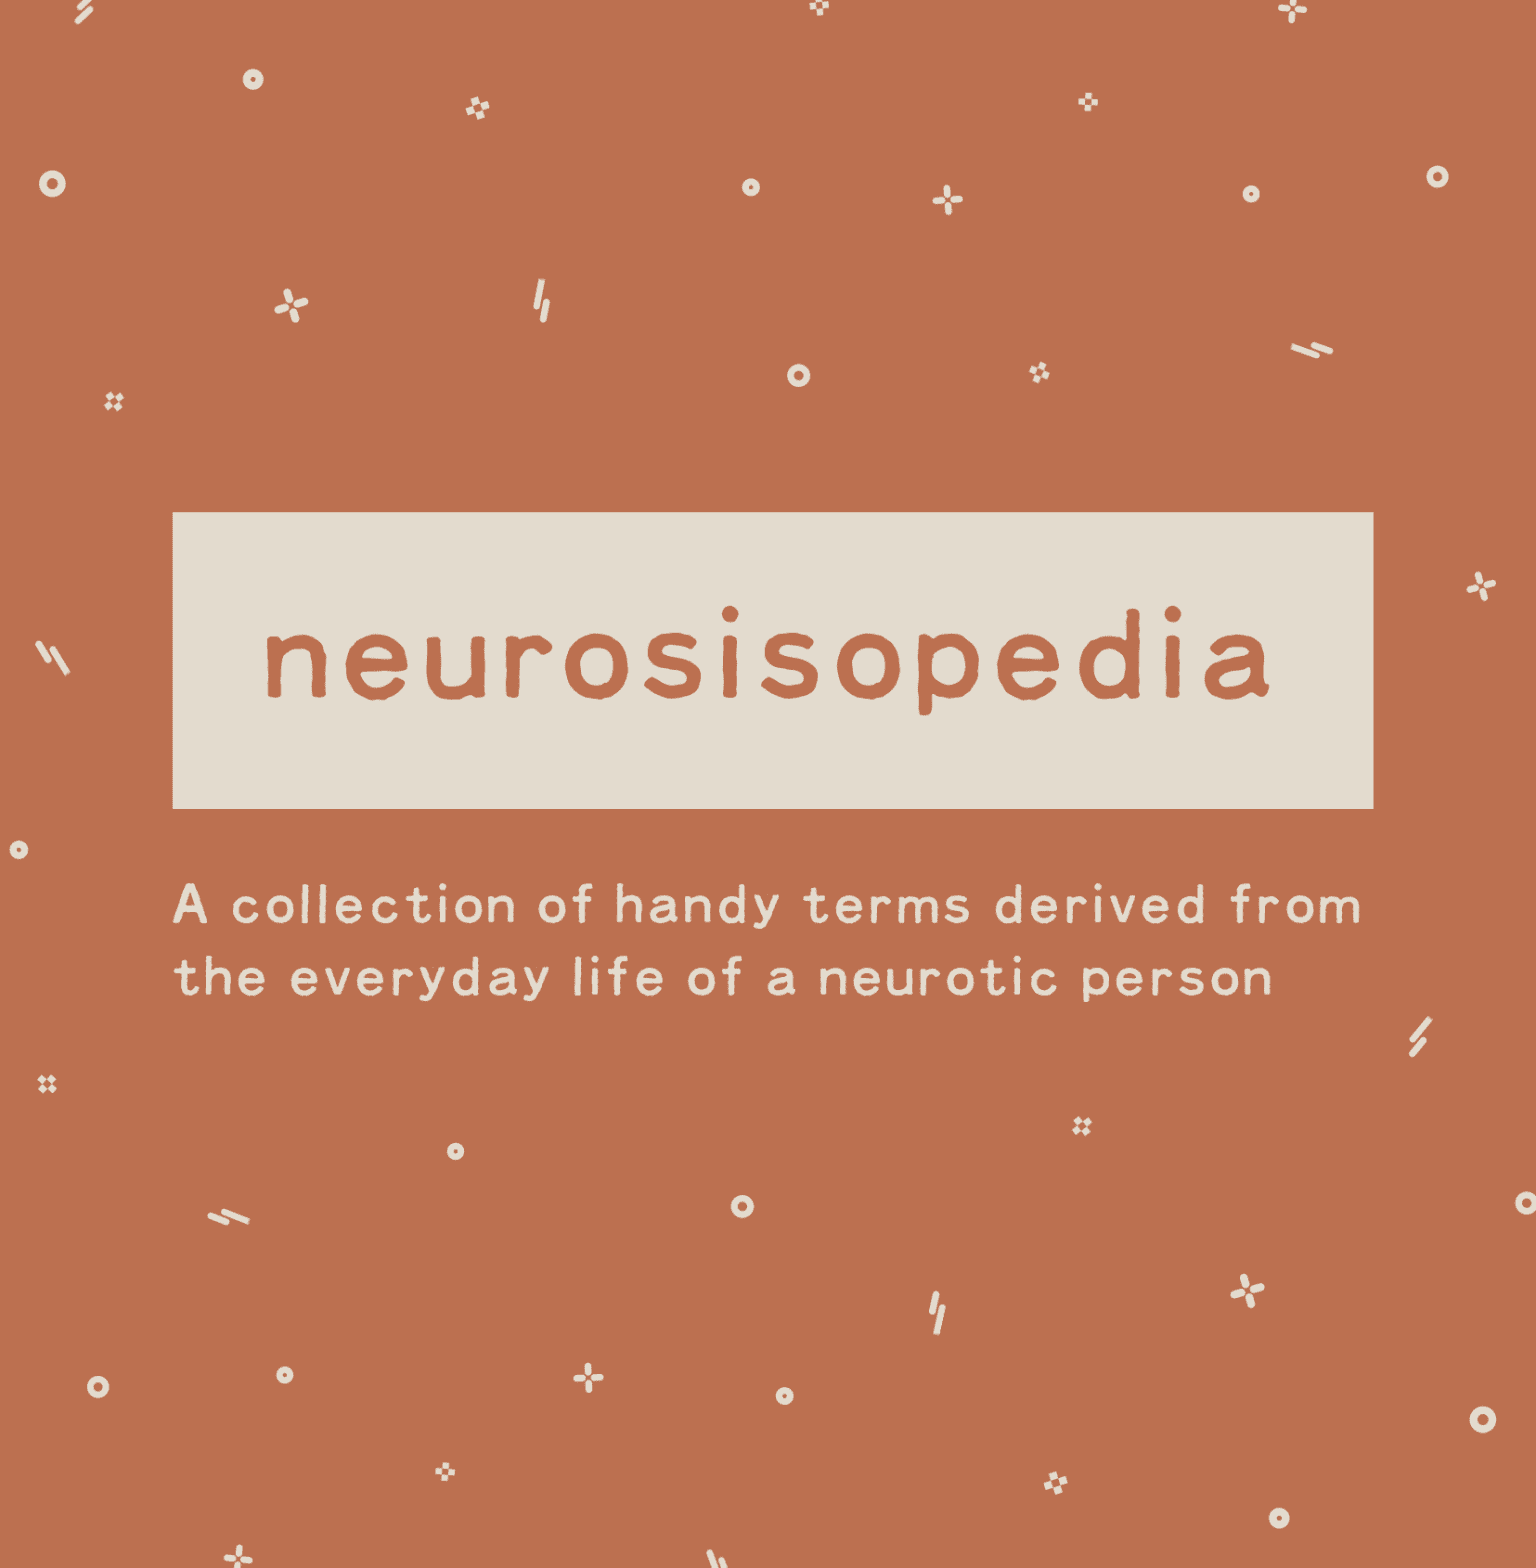 Neurosisopedia